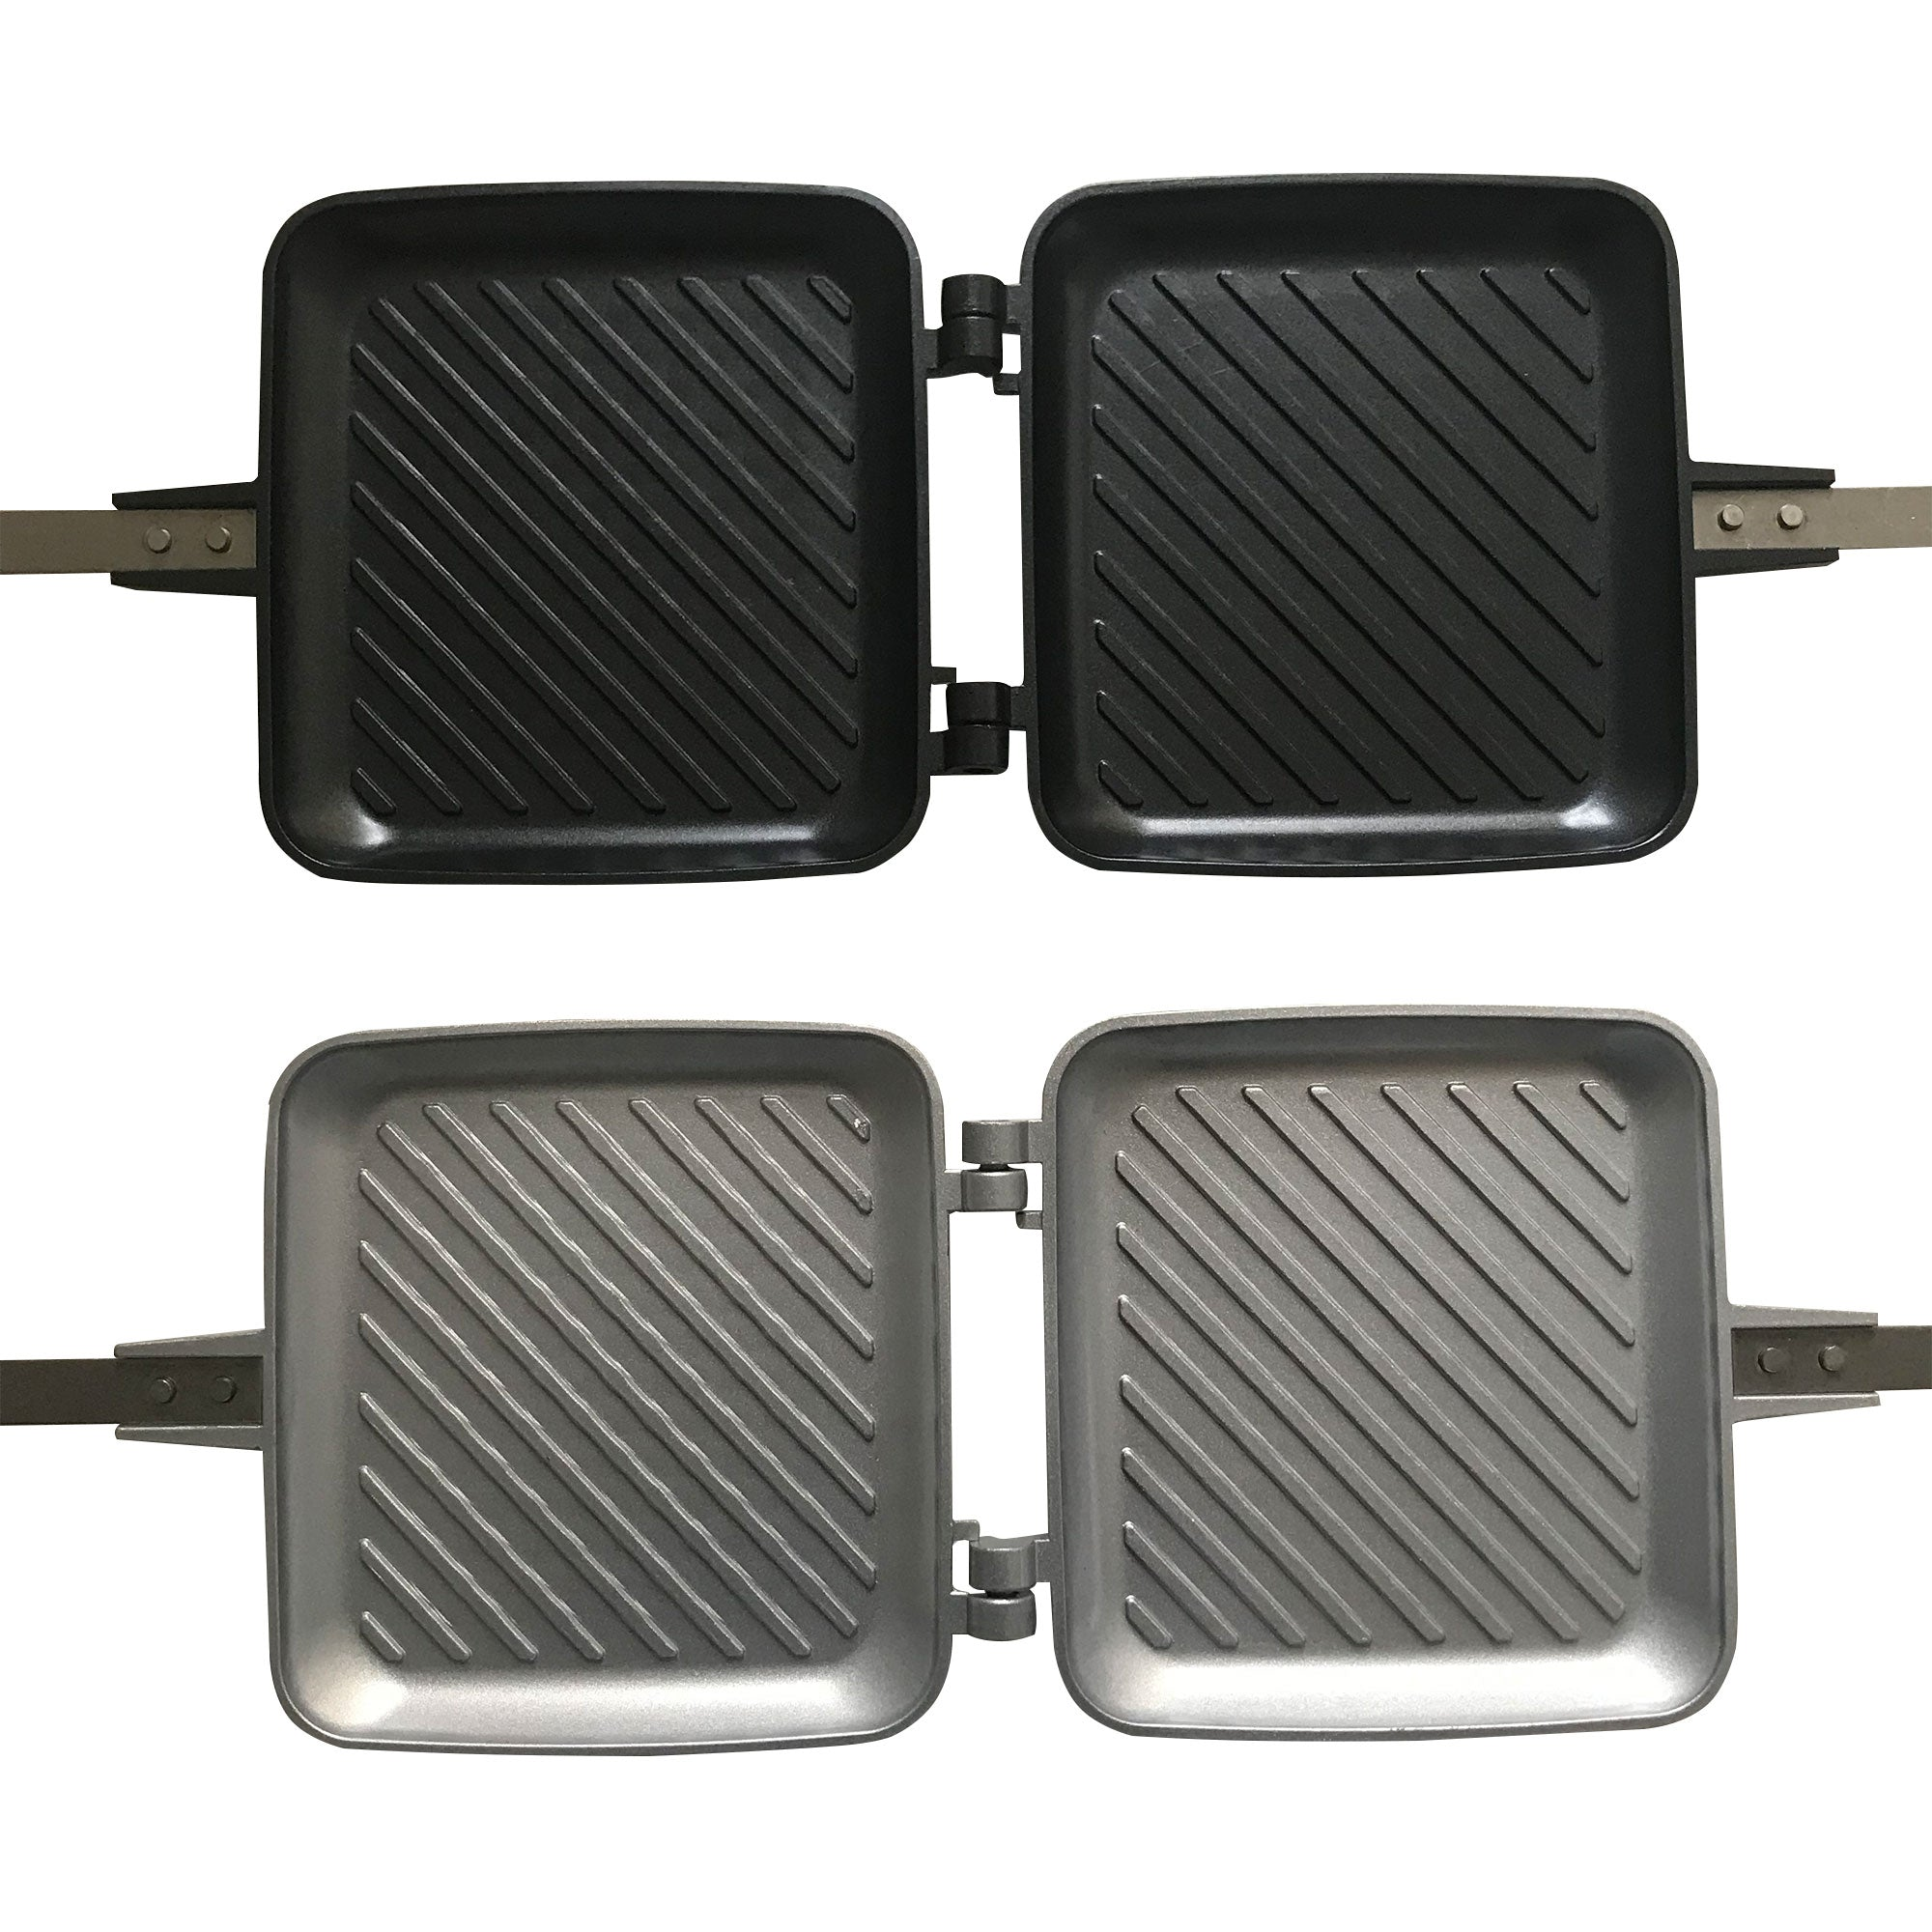 Stovetop Toastie Maker & Toasted Sandwich Maker